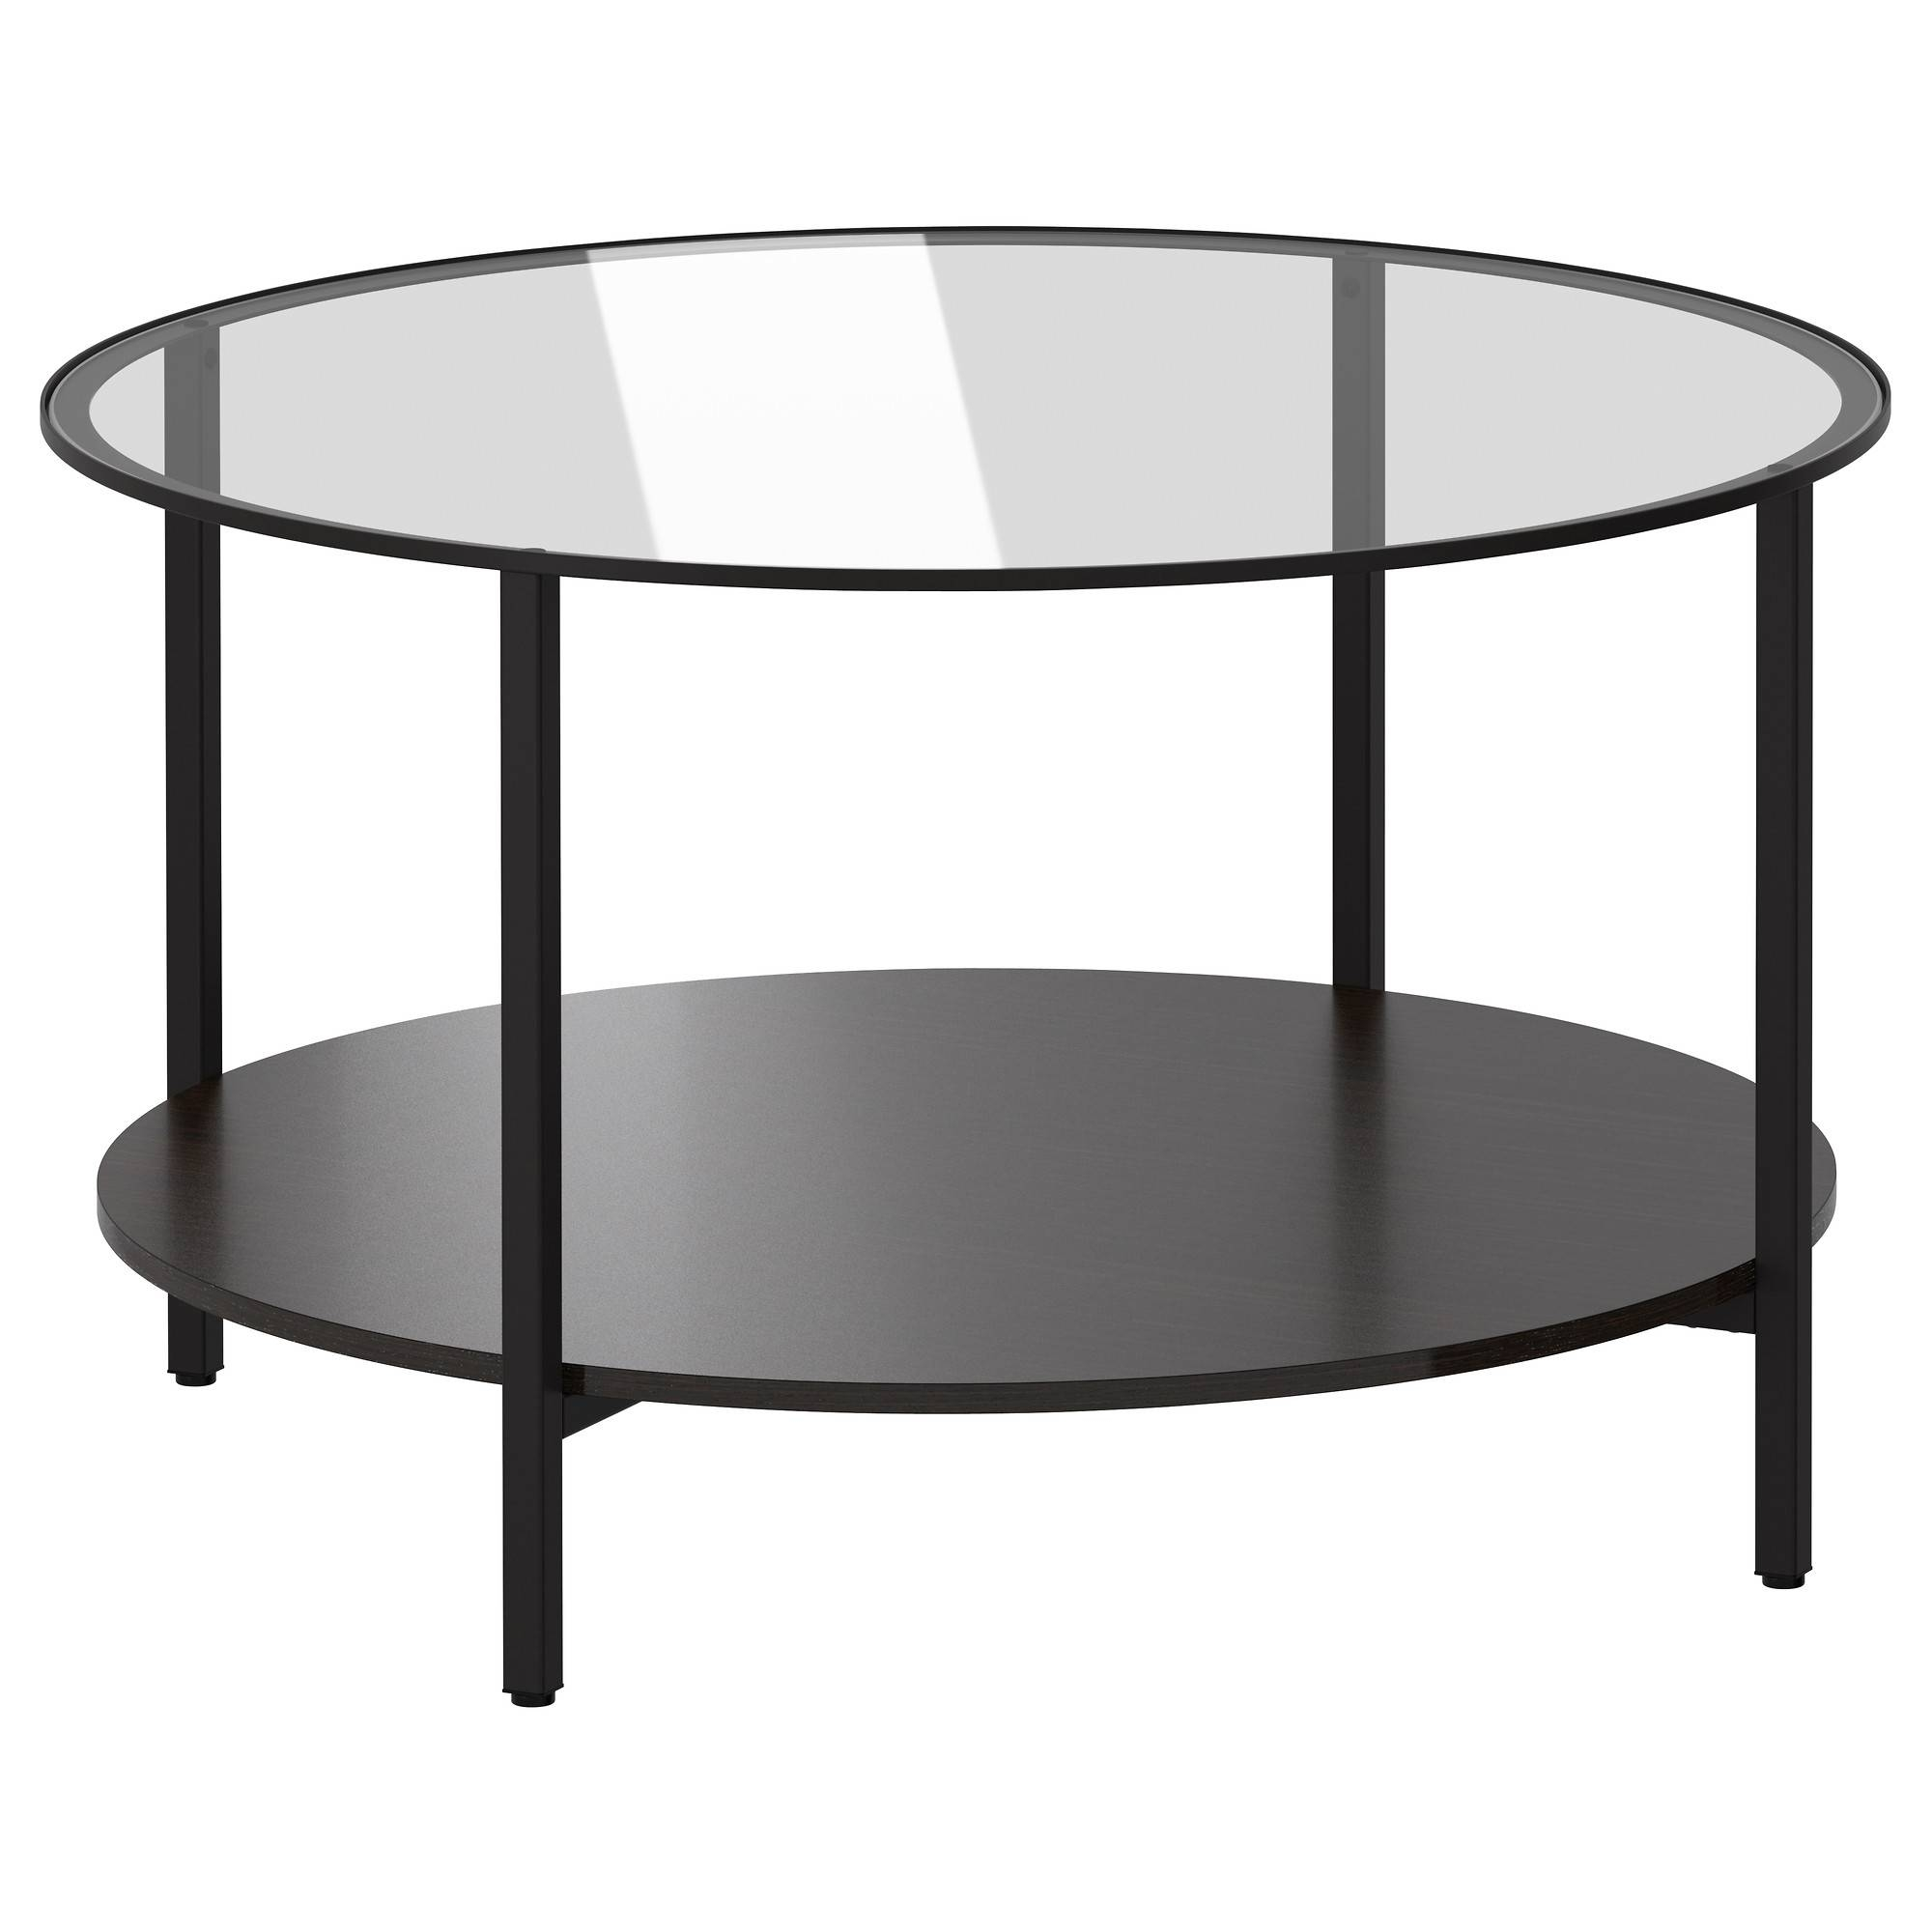 Occasional Tables - Tray, Storage & Window Tables | Ikea regarding Black Circle Coffee Tables (Image 23 of 30)